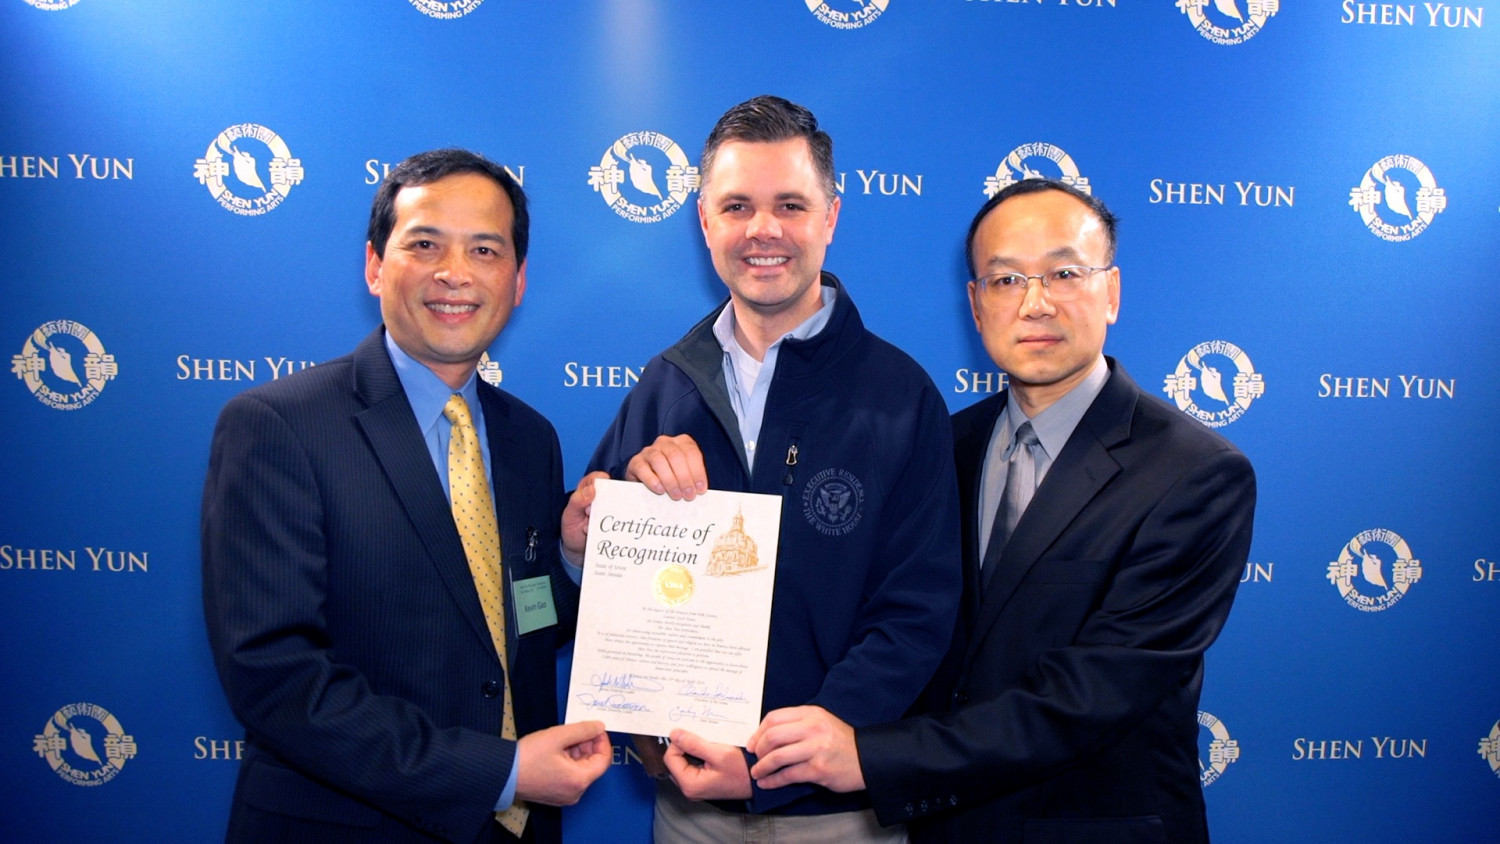 Senator Personally Welcomes Shen Yun to Des Moines